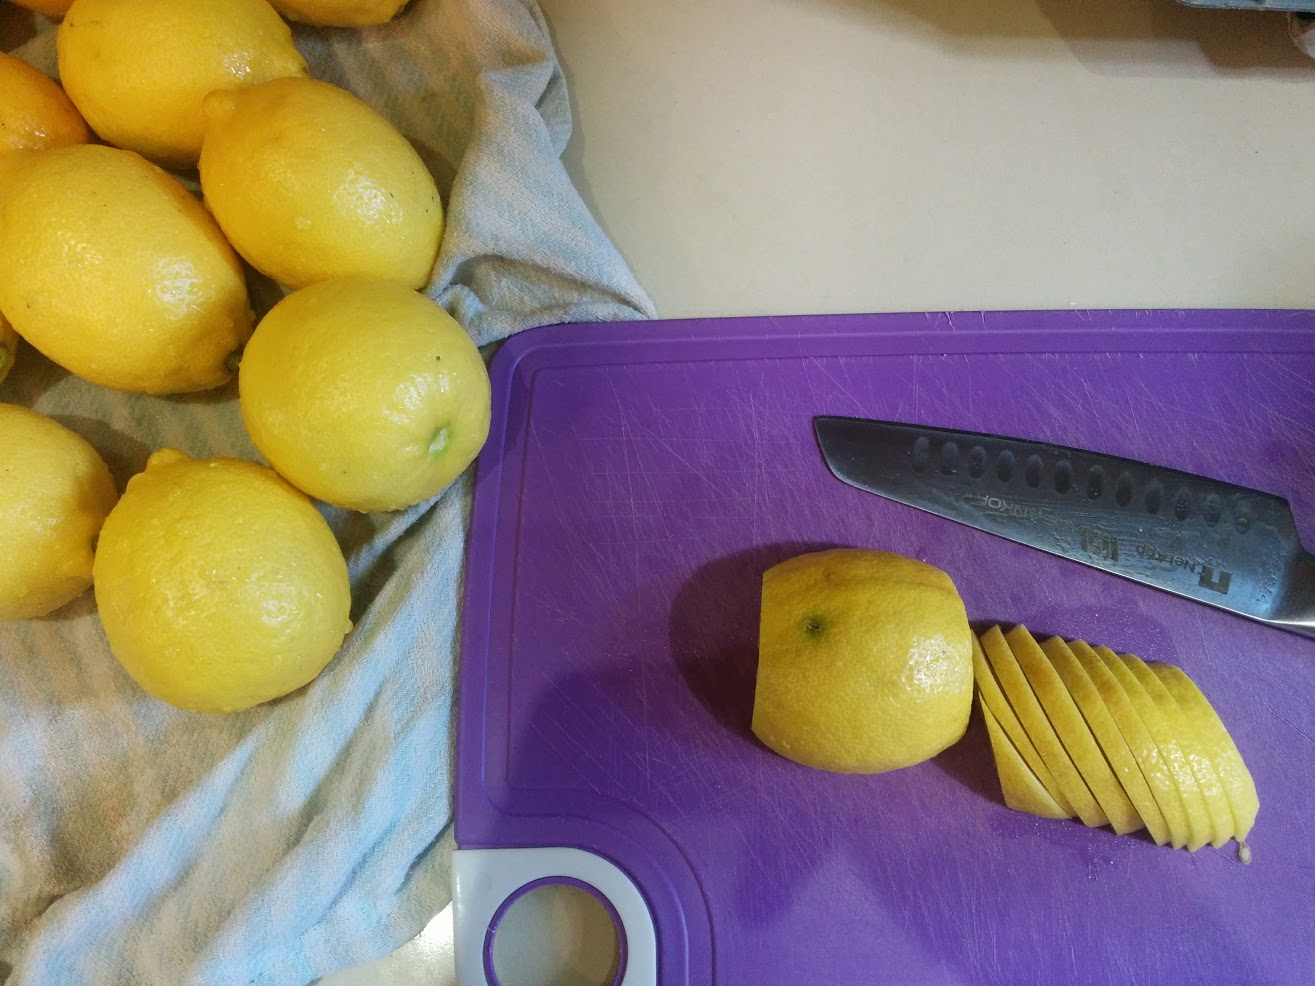 lemon-knife